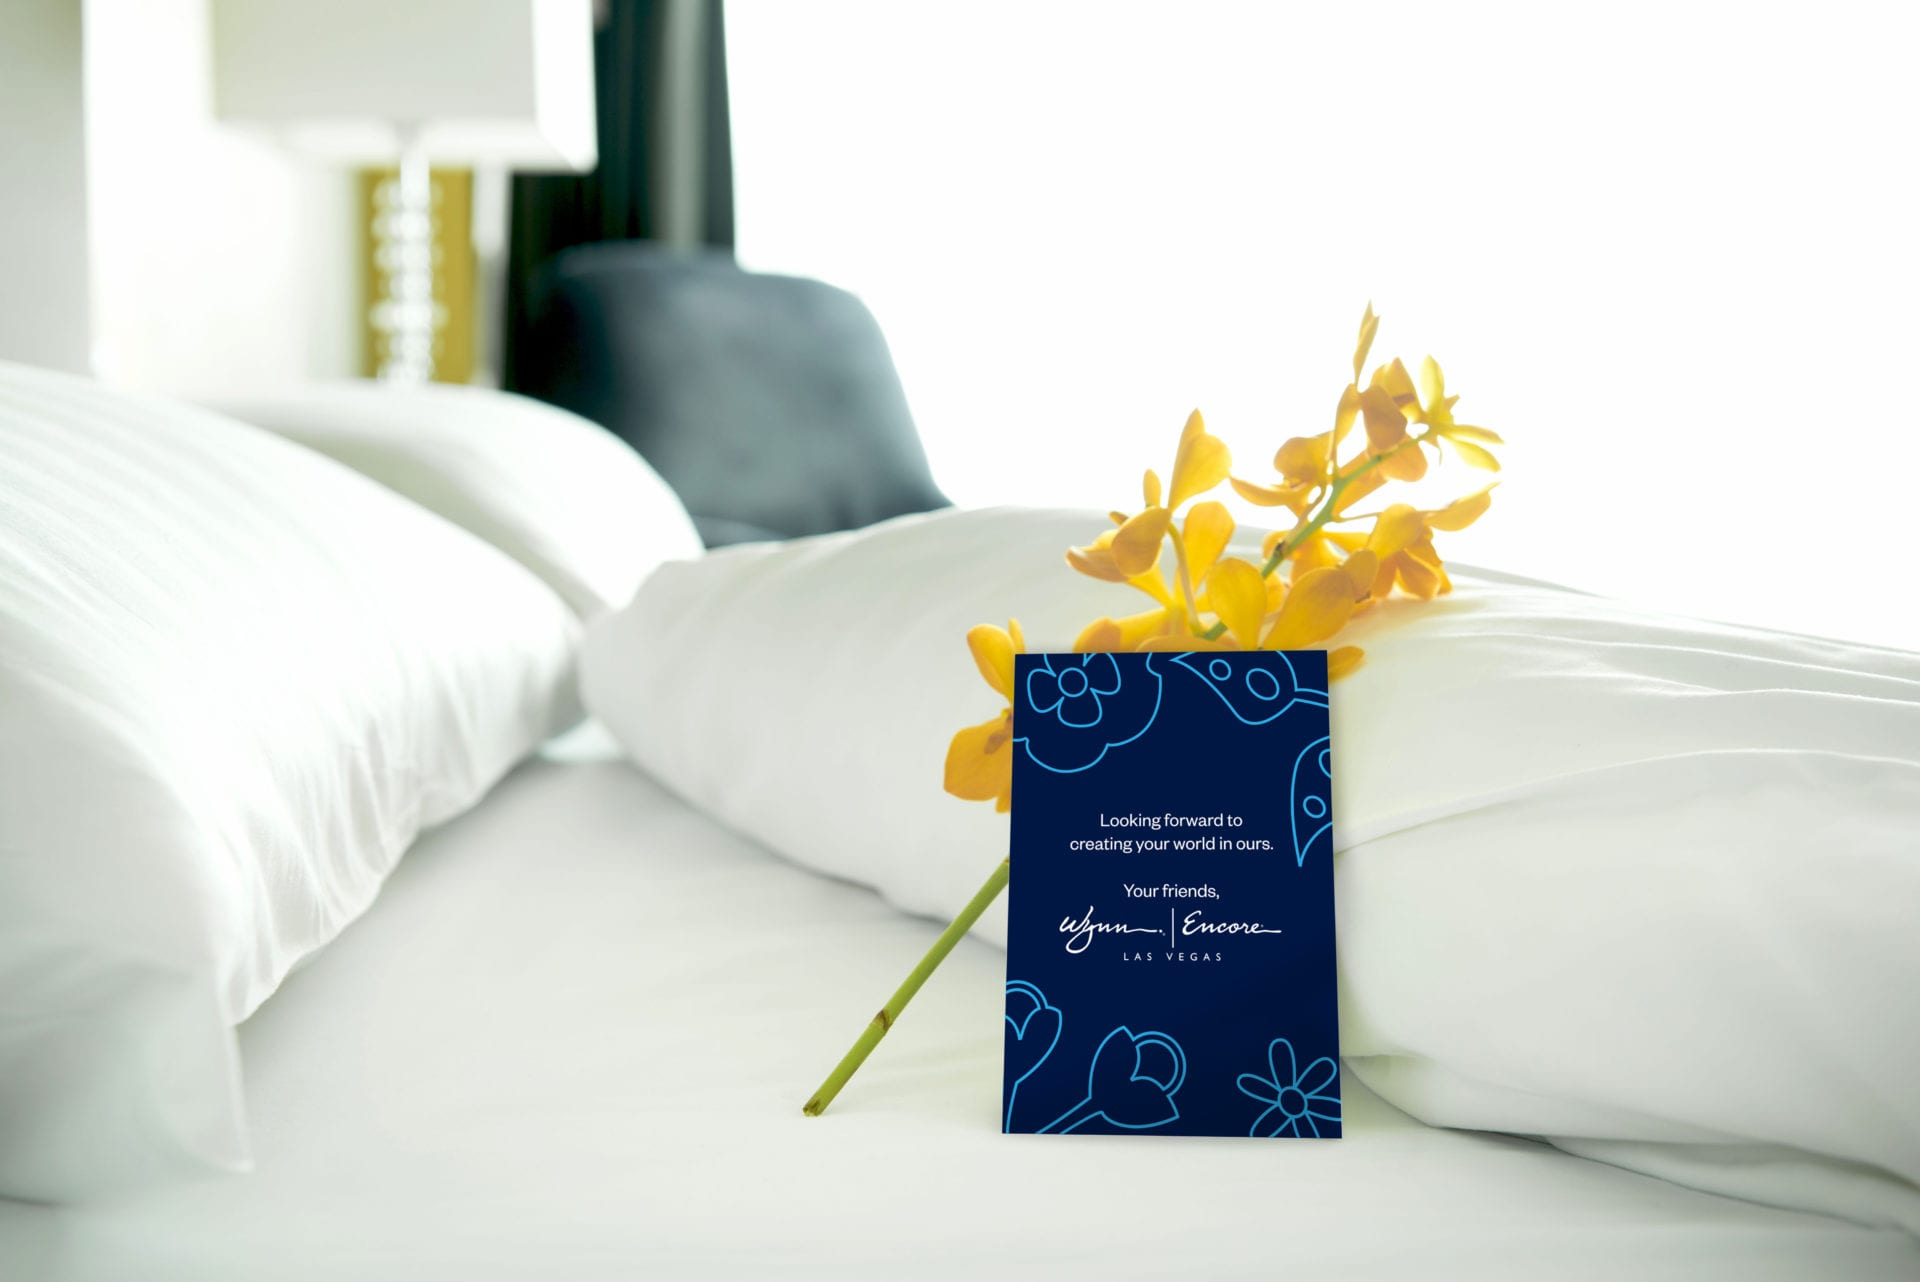 An Wynn Las Vegas amenity card placed on a bed with a flower